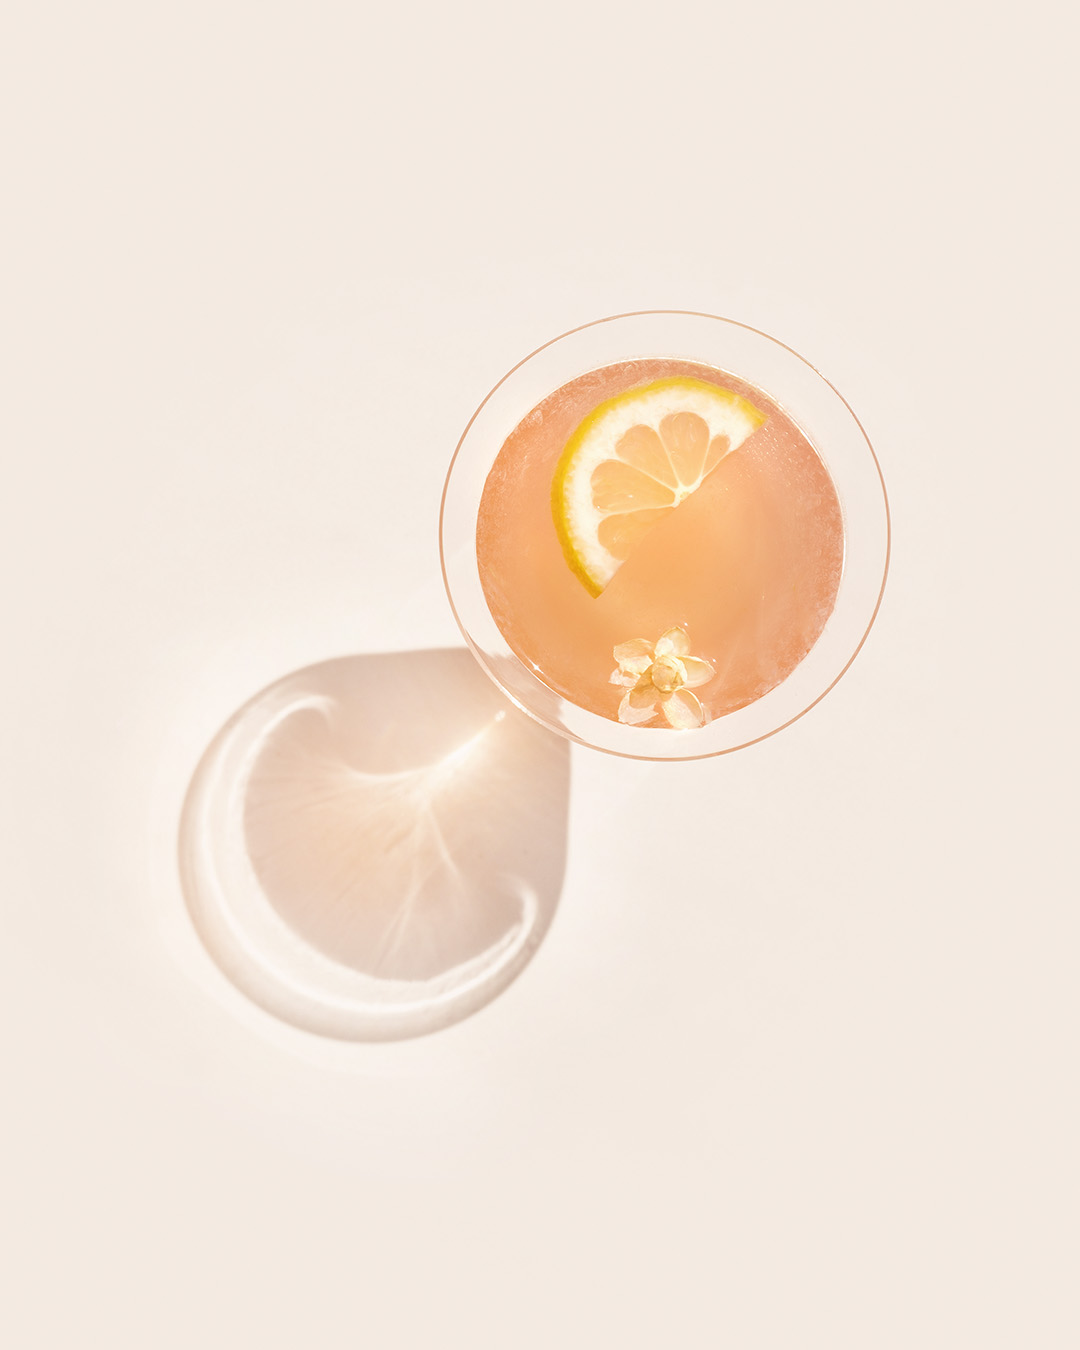 JASMINE PEARL   1¼  oz  gin ¾  oz  Pomp & Whimsy 1  oz  lemon ¼  oz  Campari   Shake ingredients with ice. Strain into a chilled coupe or martini glass, and garnish with a lemon wheel and jasmine flower (dried or fresh).